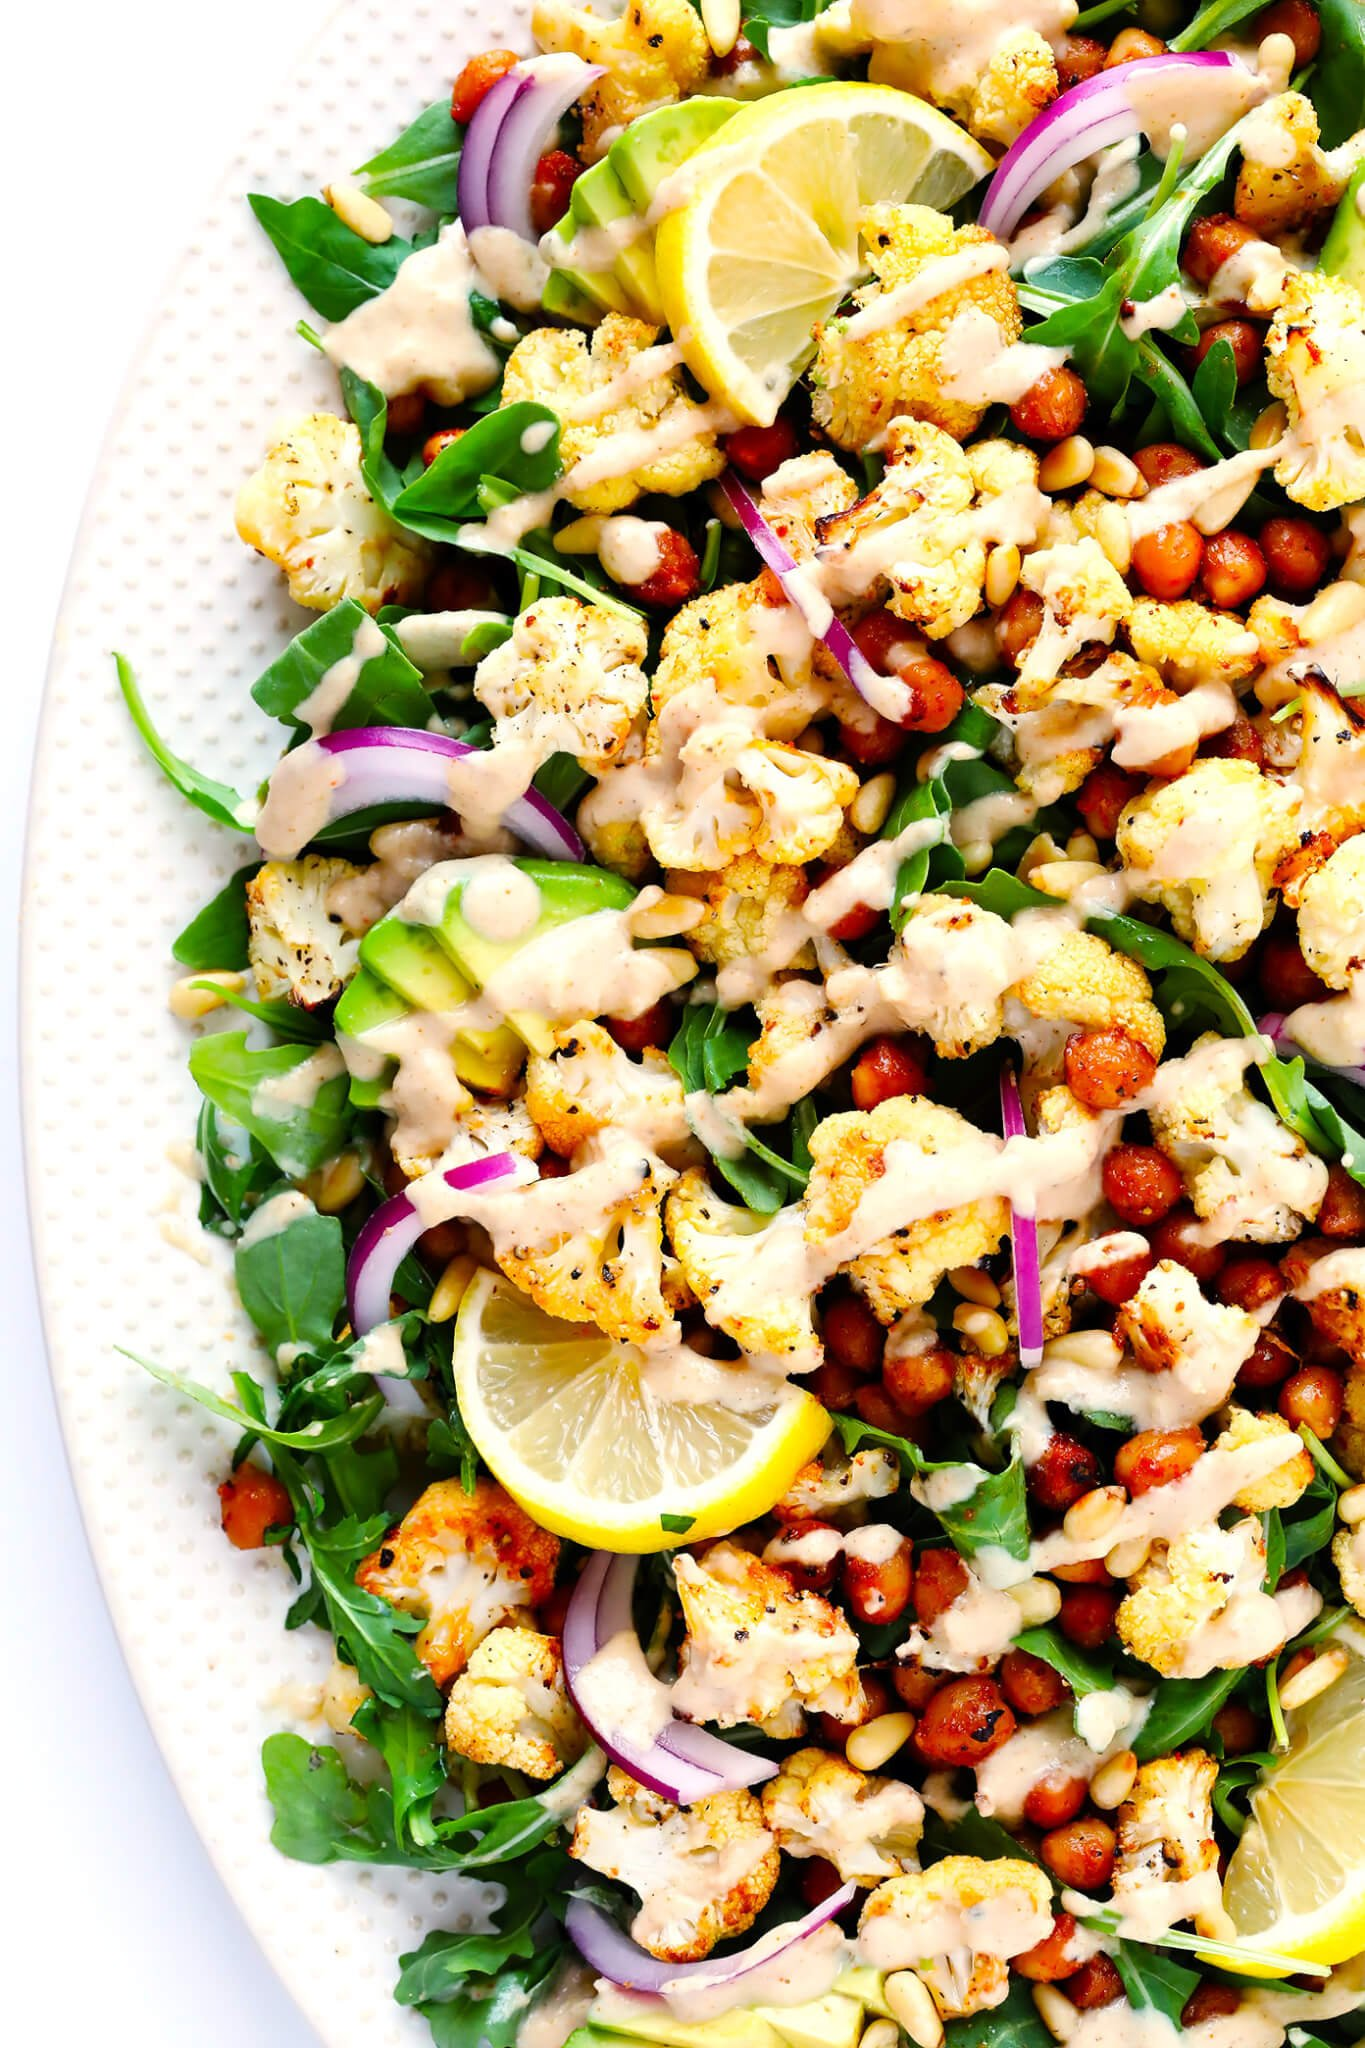 Vegetarian Roasted Cauliflower, Chickpea and Arugula Salad with Dreamy Tahini Dressing